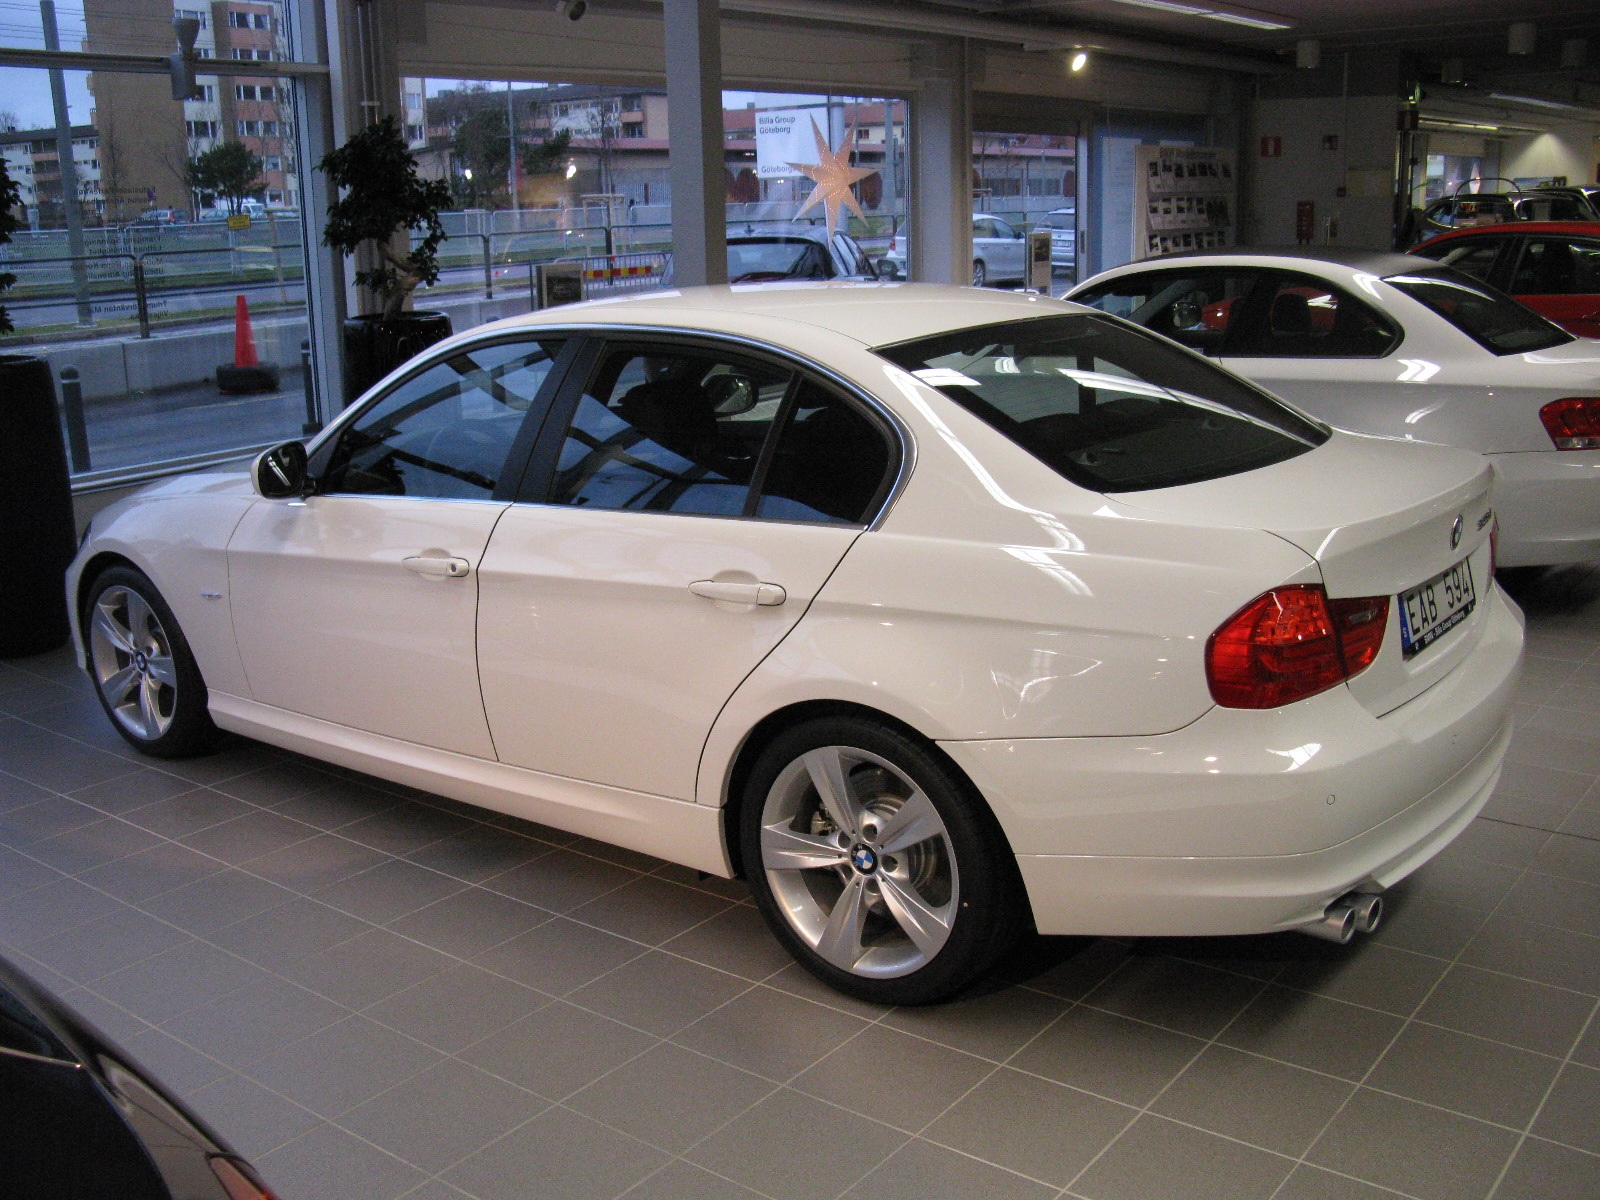 BMW 325d E90 | Flickr - Photo Sharing!